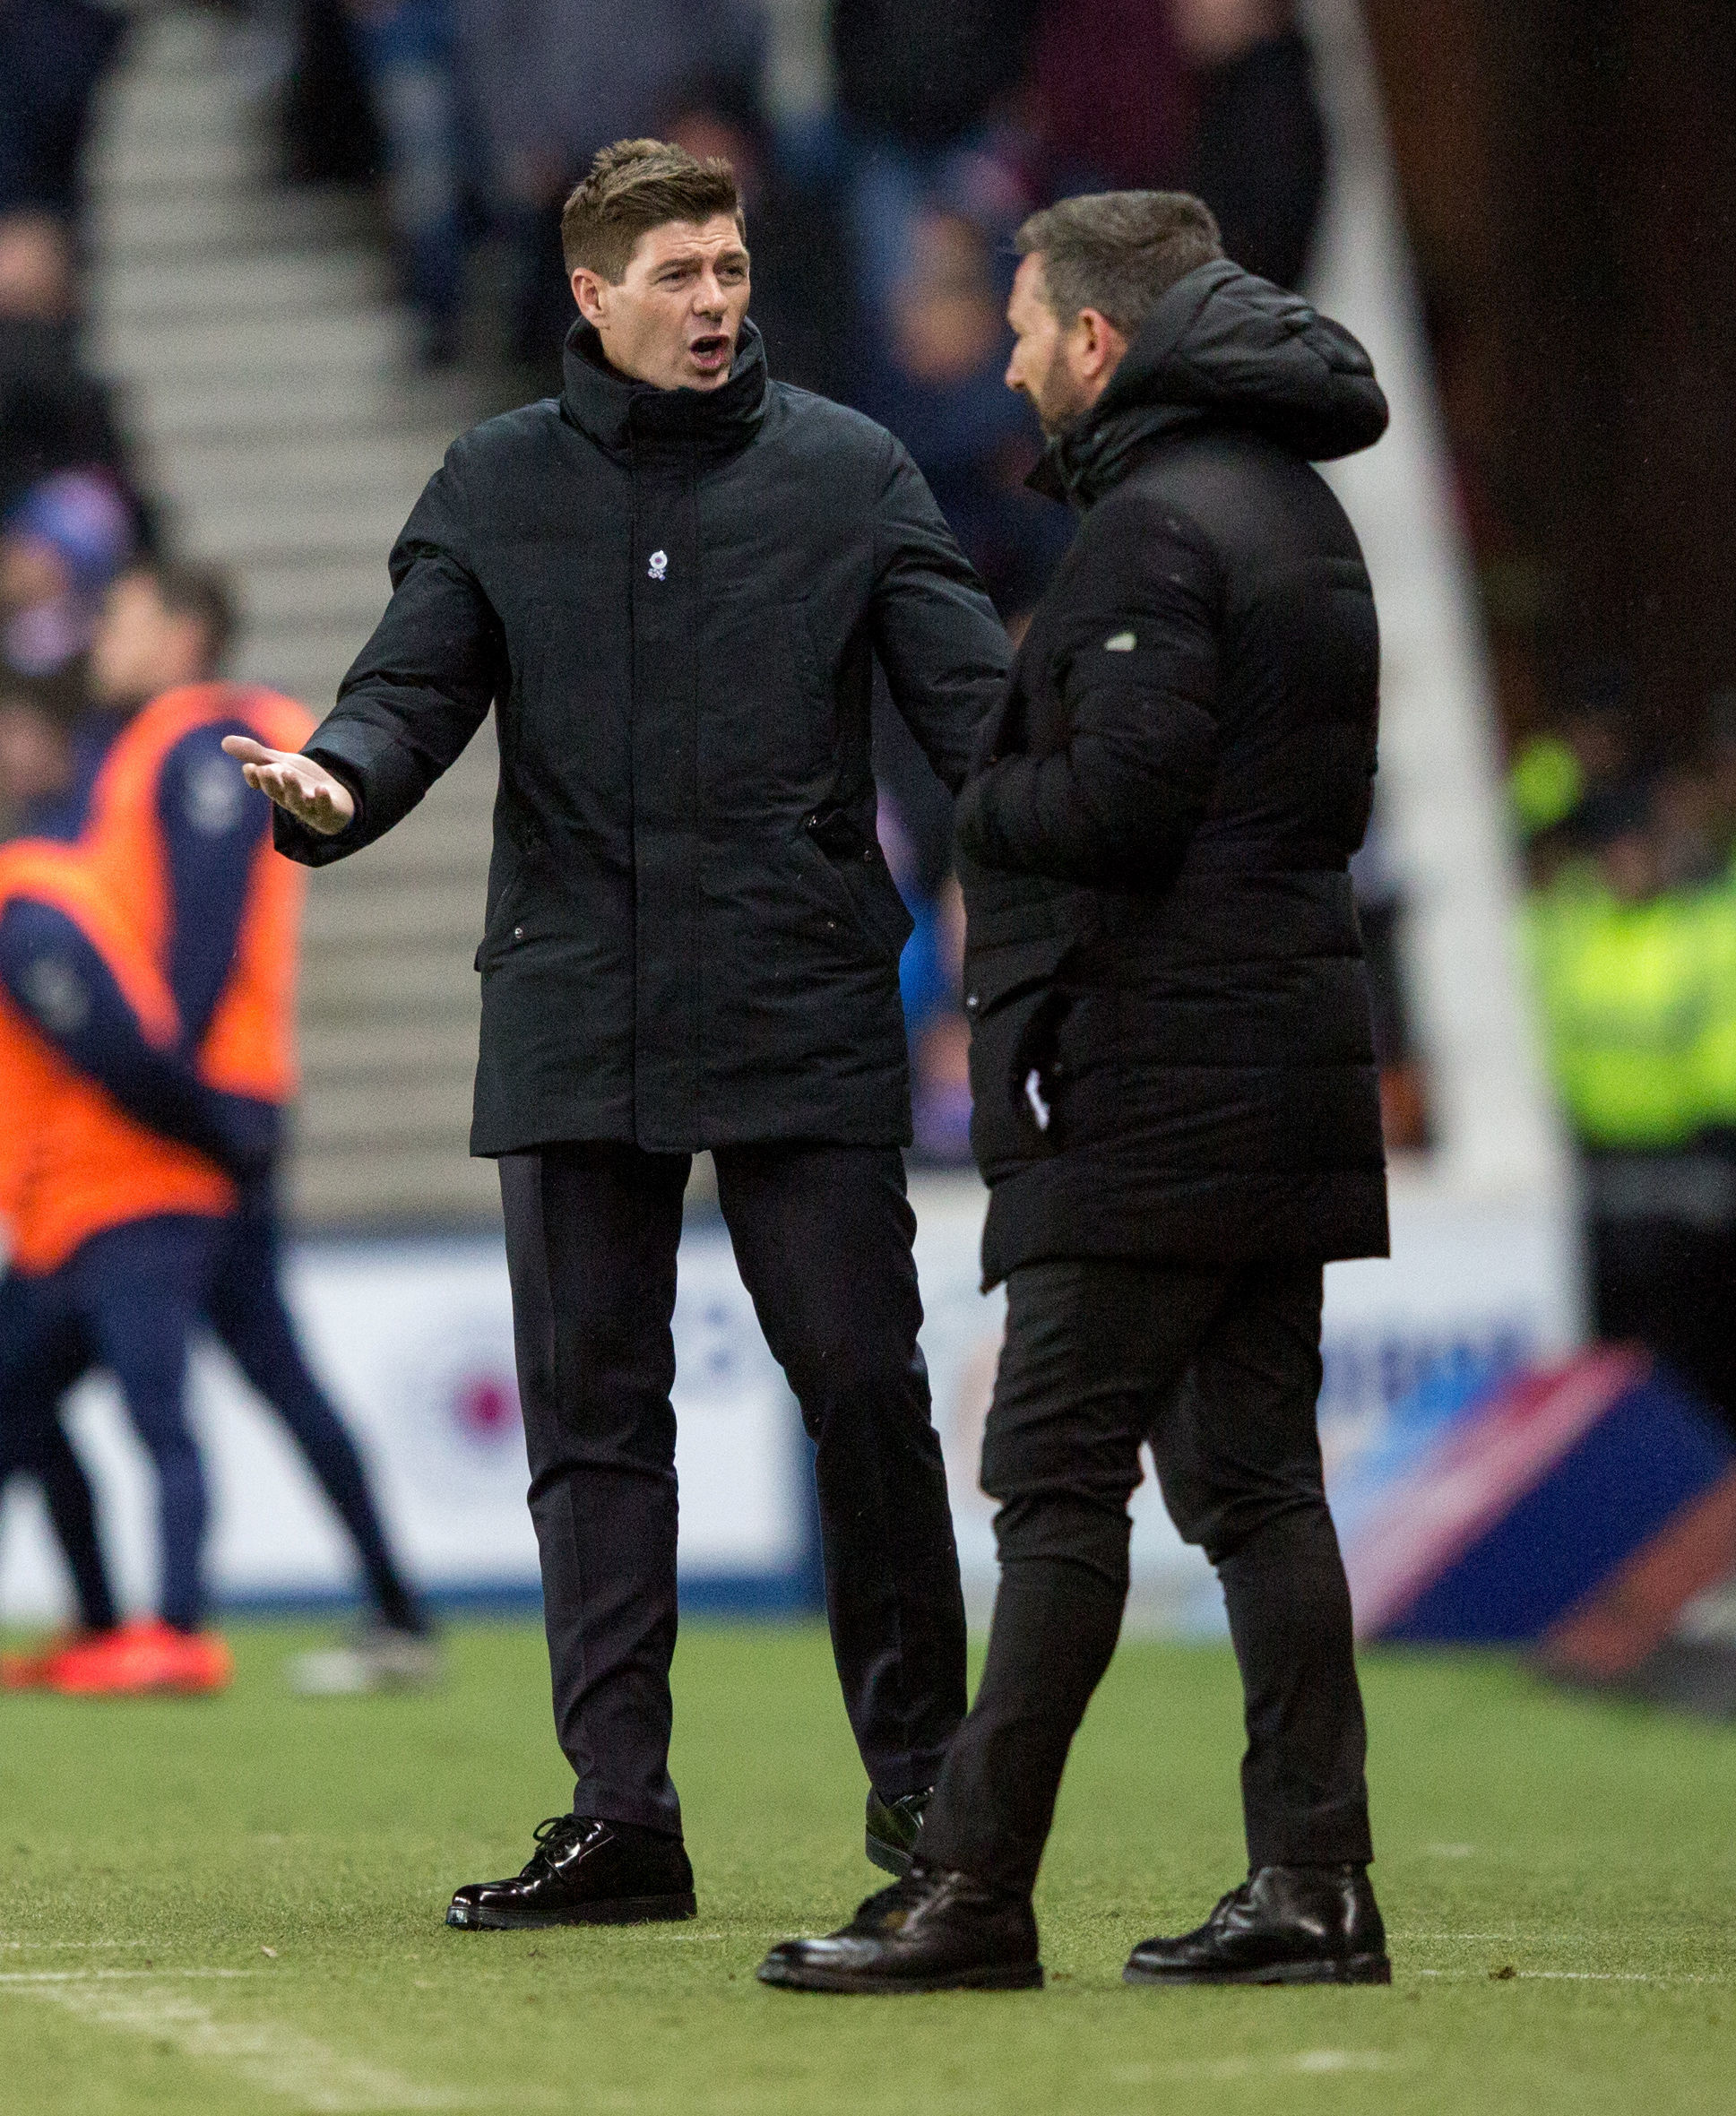 Rangers Manager Steven Gerrard and Aberdeen Manager Derek McInnes during the William Hill Scottish Cup quarter final replay match at Ibrox Stadium, Glasgow. PRESS ASSOCIATION Photo. Picture date: Tuesday March 12, 2019. See PA story SOCCER Rangers. Photo